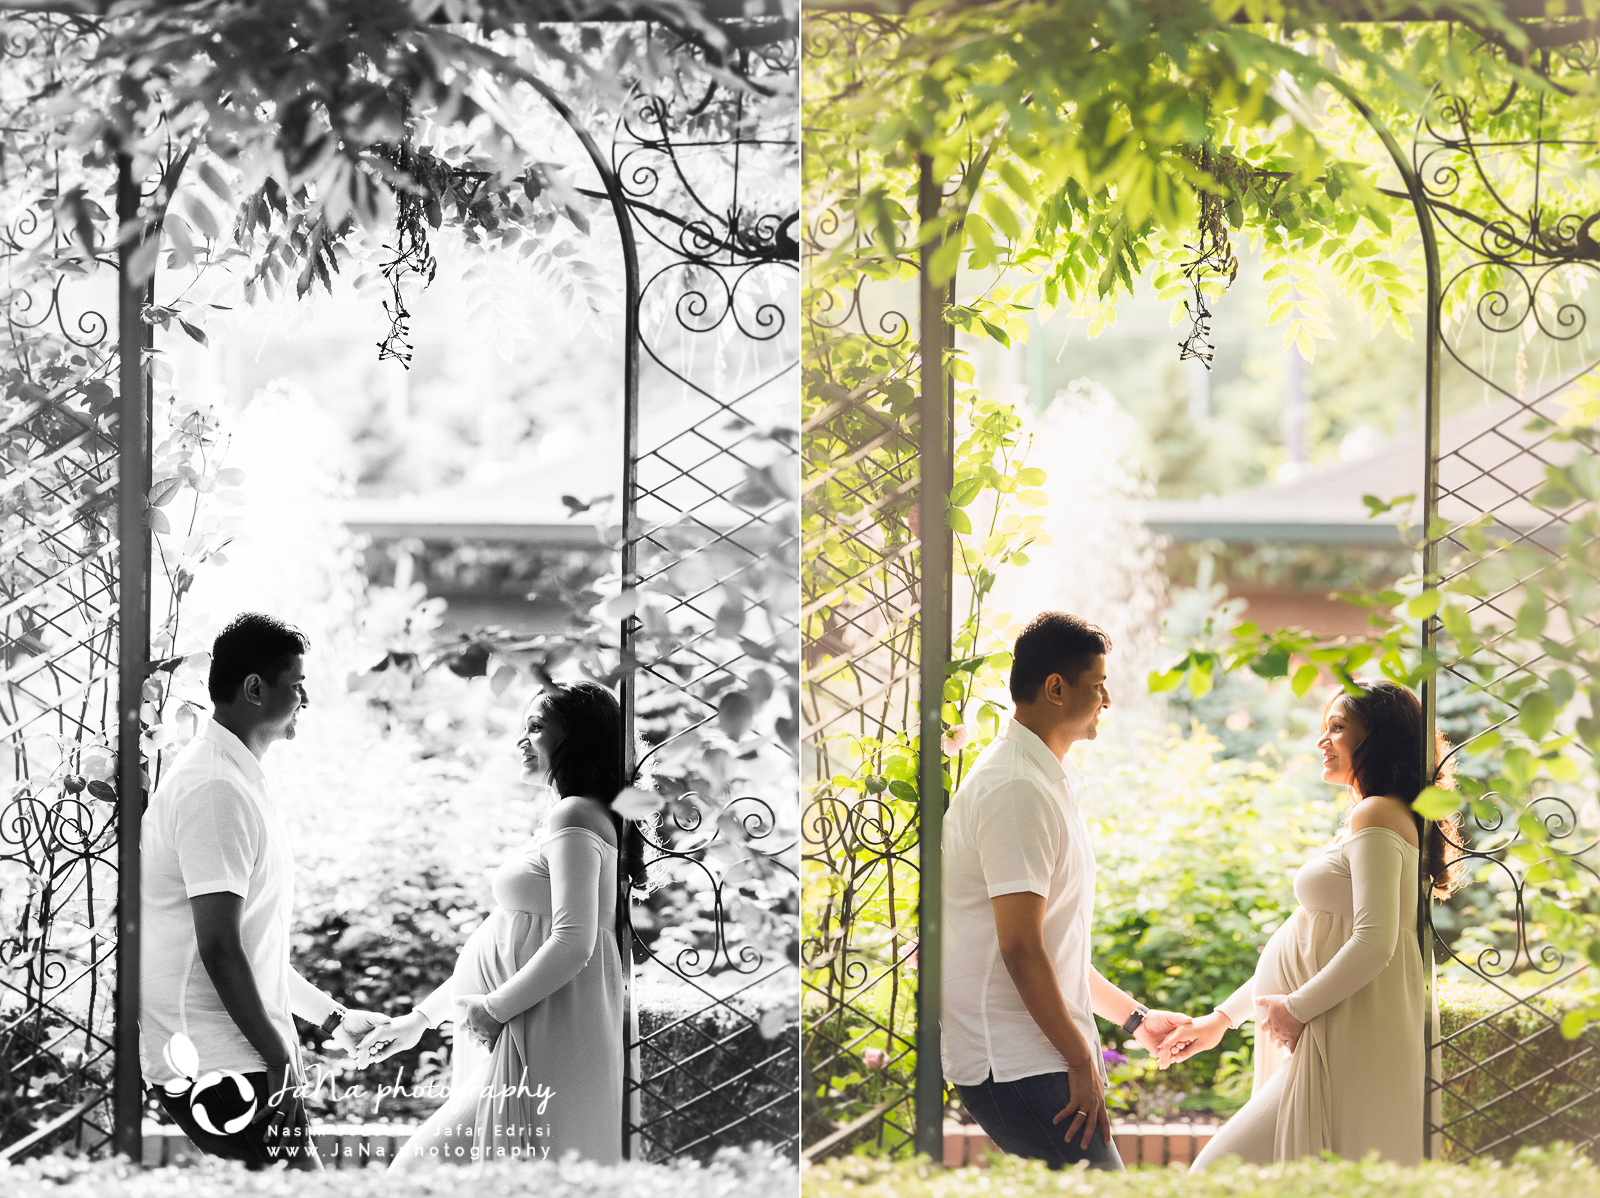 north vancouver maternity photography | Jana Photography in Vancouver had the pleasure of joining these lovely couples for their maternity photo shoot at Park & Tilford Gardens. With breathtaking sceneries in every spot, this location truly is a magical place to capture maternity shots. We have a large selection of gowns in our studio for moms, so they get to choose the ones they like and we also suggest some of them that we think it will look good on them. For these lovely moms to be, we picked out and took a few gowns from our studio and they also brought their own favorite fitted dresses as well. Their selected outfits were an excellent choice for outdoor shots. Vancouver maternity photography.  We got there right on time to catch the sun in the perfect spot for these glorious shots of this lovely mama. Natural light photography is always more attractive because it is more comfortable for moms because they get a chance to be themselves and pose naturally, also they can enjoy the sunshine.  We usually have some favorite spots in Vancouver to shoot out photos, including Deer Lake, Cate's Park, and Park & Tilford; however, since the weather is very nice these days, we have some new locations to visit during our photo shoot. For this lovely couple, we went to Cleveland Dam in North Vancouver, and the photos turned out to be magical. Our models were super photogenic and the view of the Lions mountain in the background added to the beauty of the photos. Cleveland Dam is one of the most beautiful places in North shore, that many people think of it as heaven.  We are grateful that they booked a new born session with us as well, which means we'll be meeting their bundle of joy in Jana Photography studio located in Vancouver very soon.